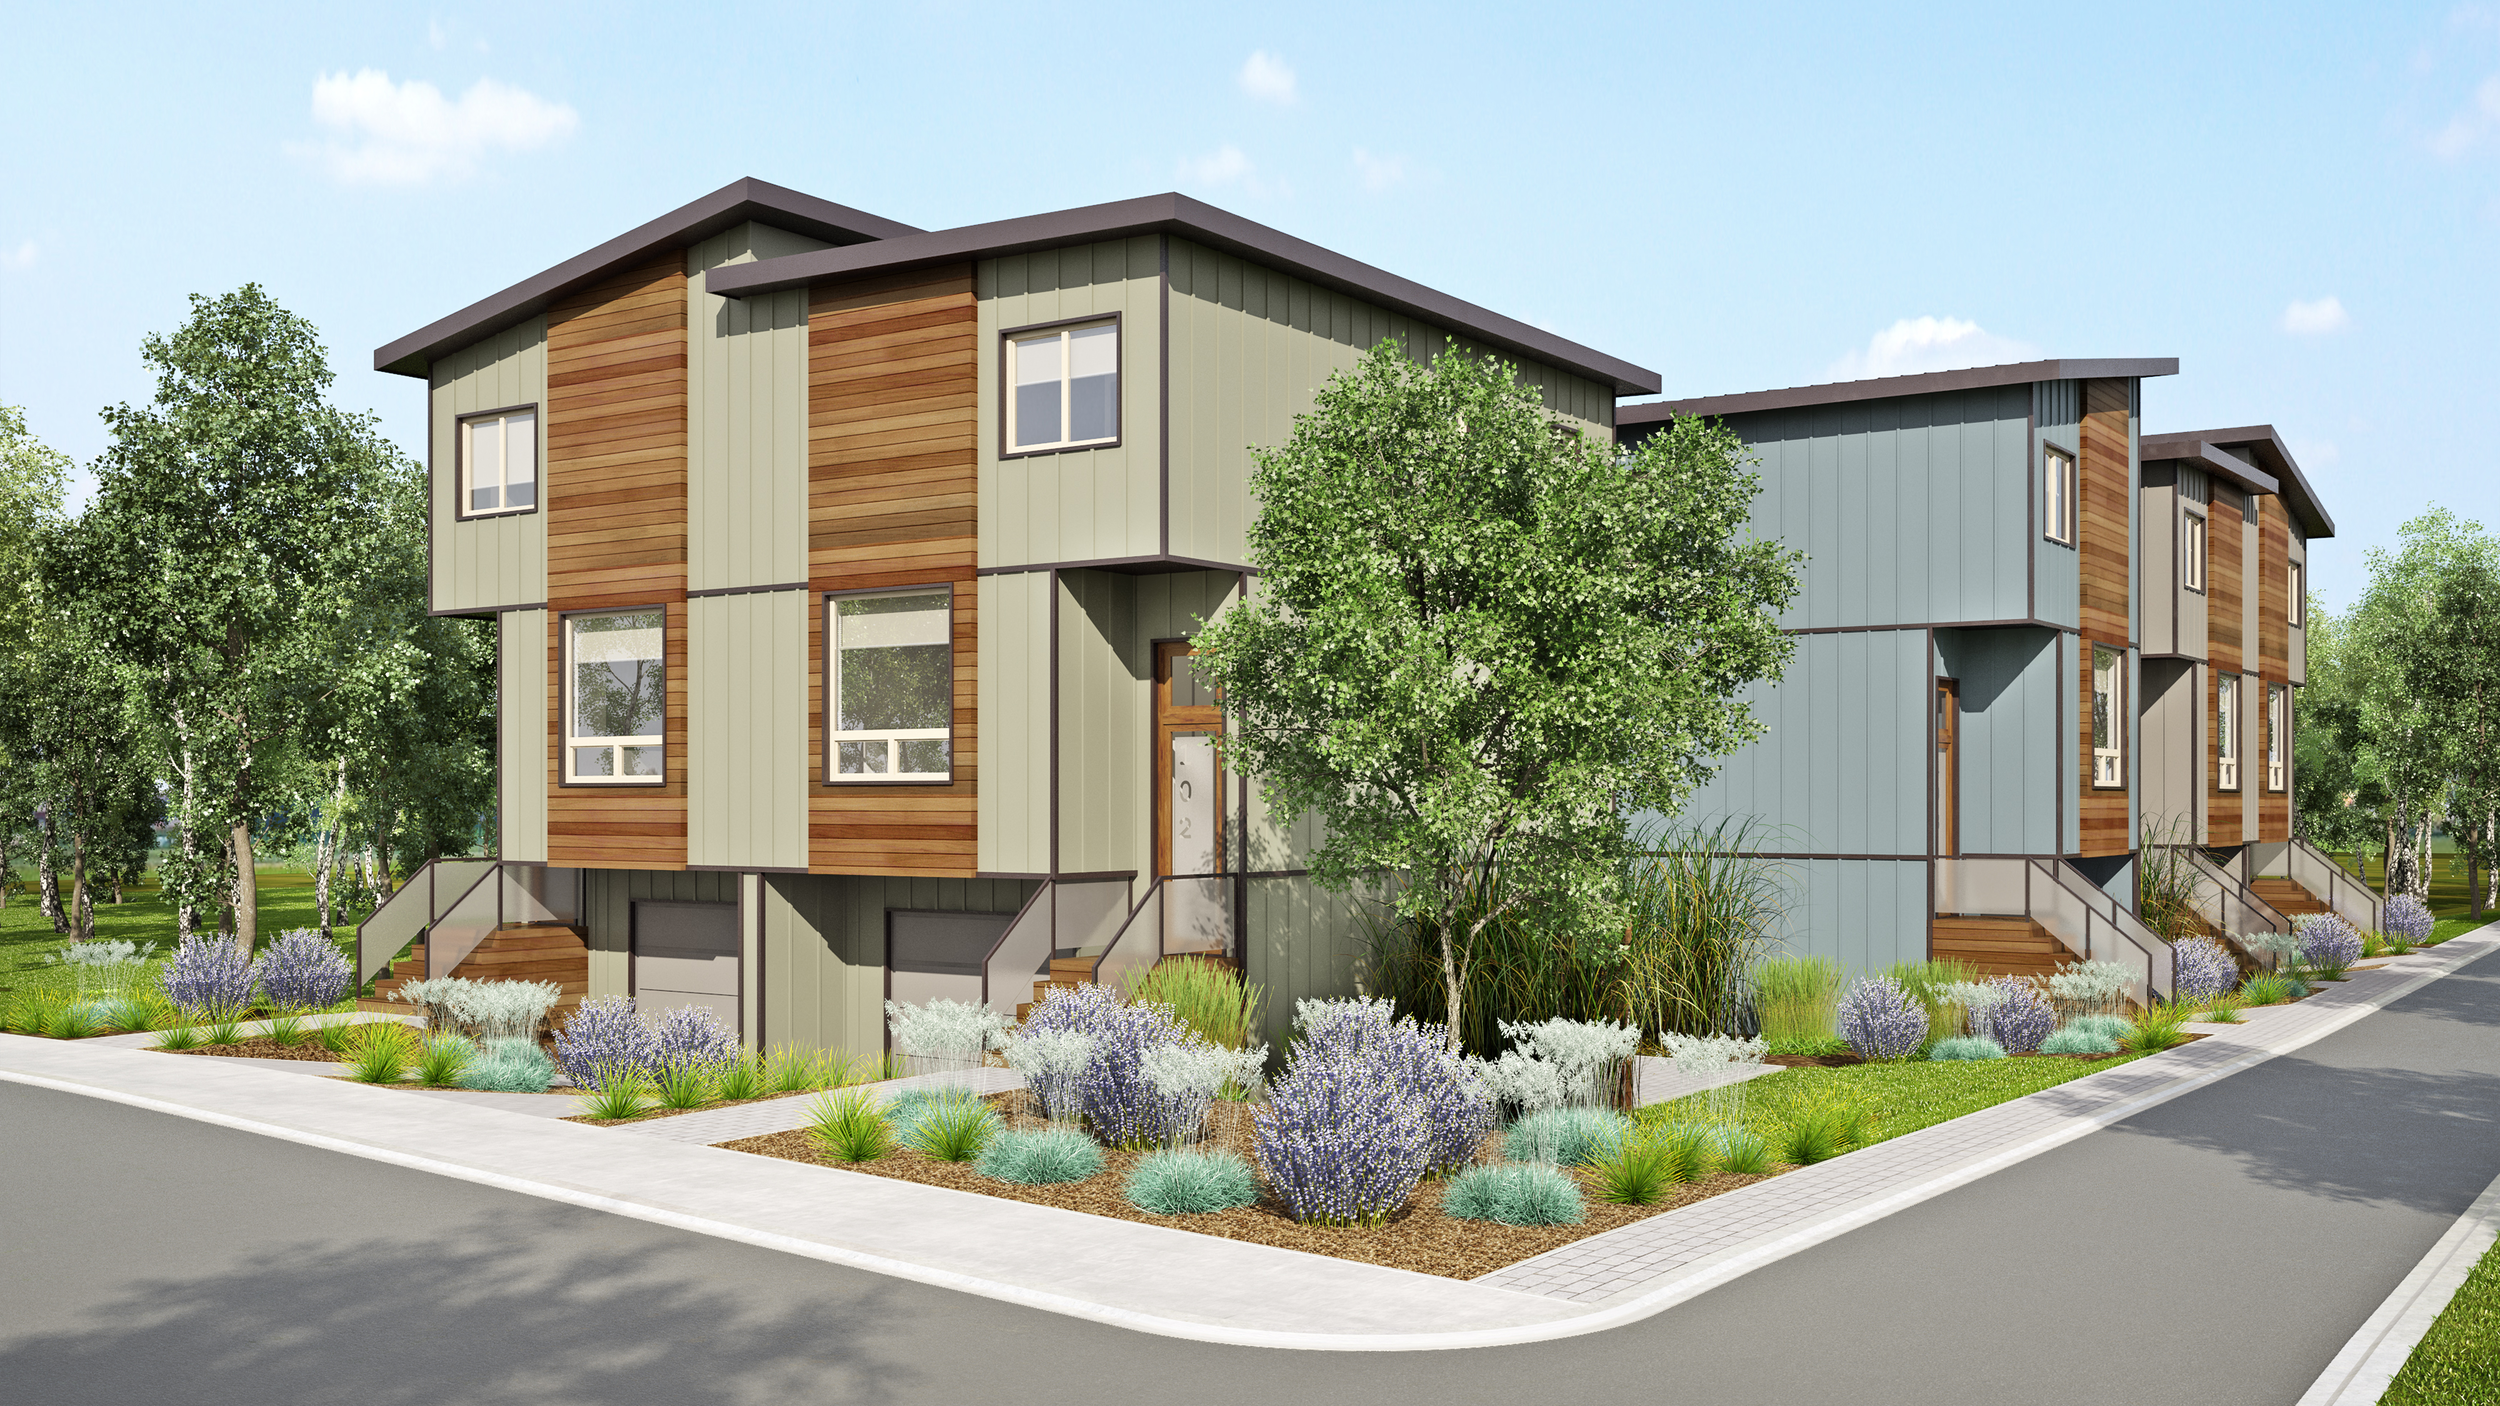 Cluster housing is moving ahead in Penticton.